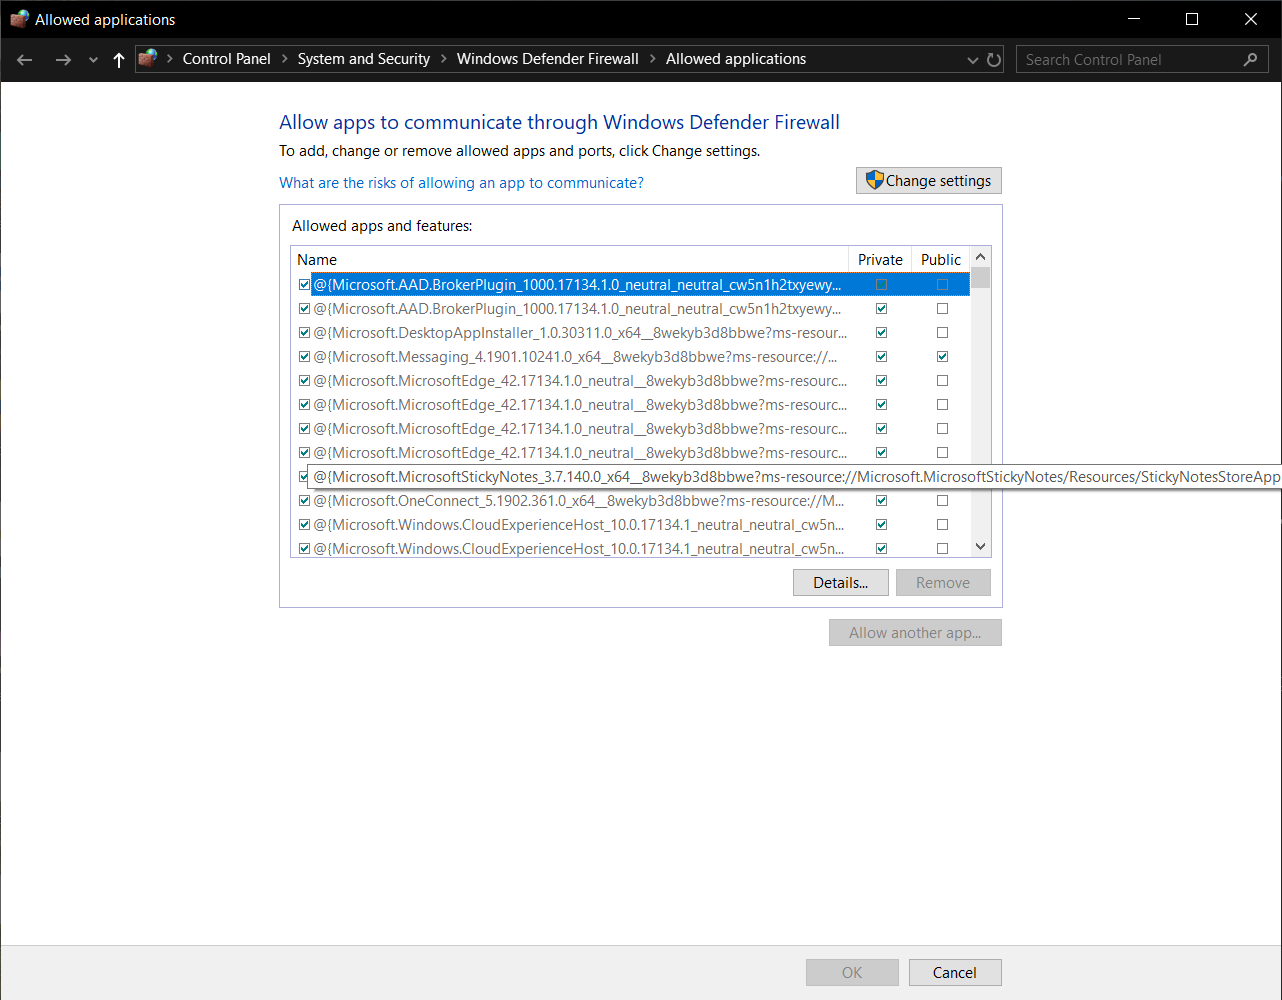 Allowed applications for Windows Defender Firewall